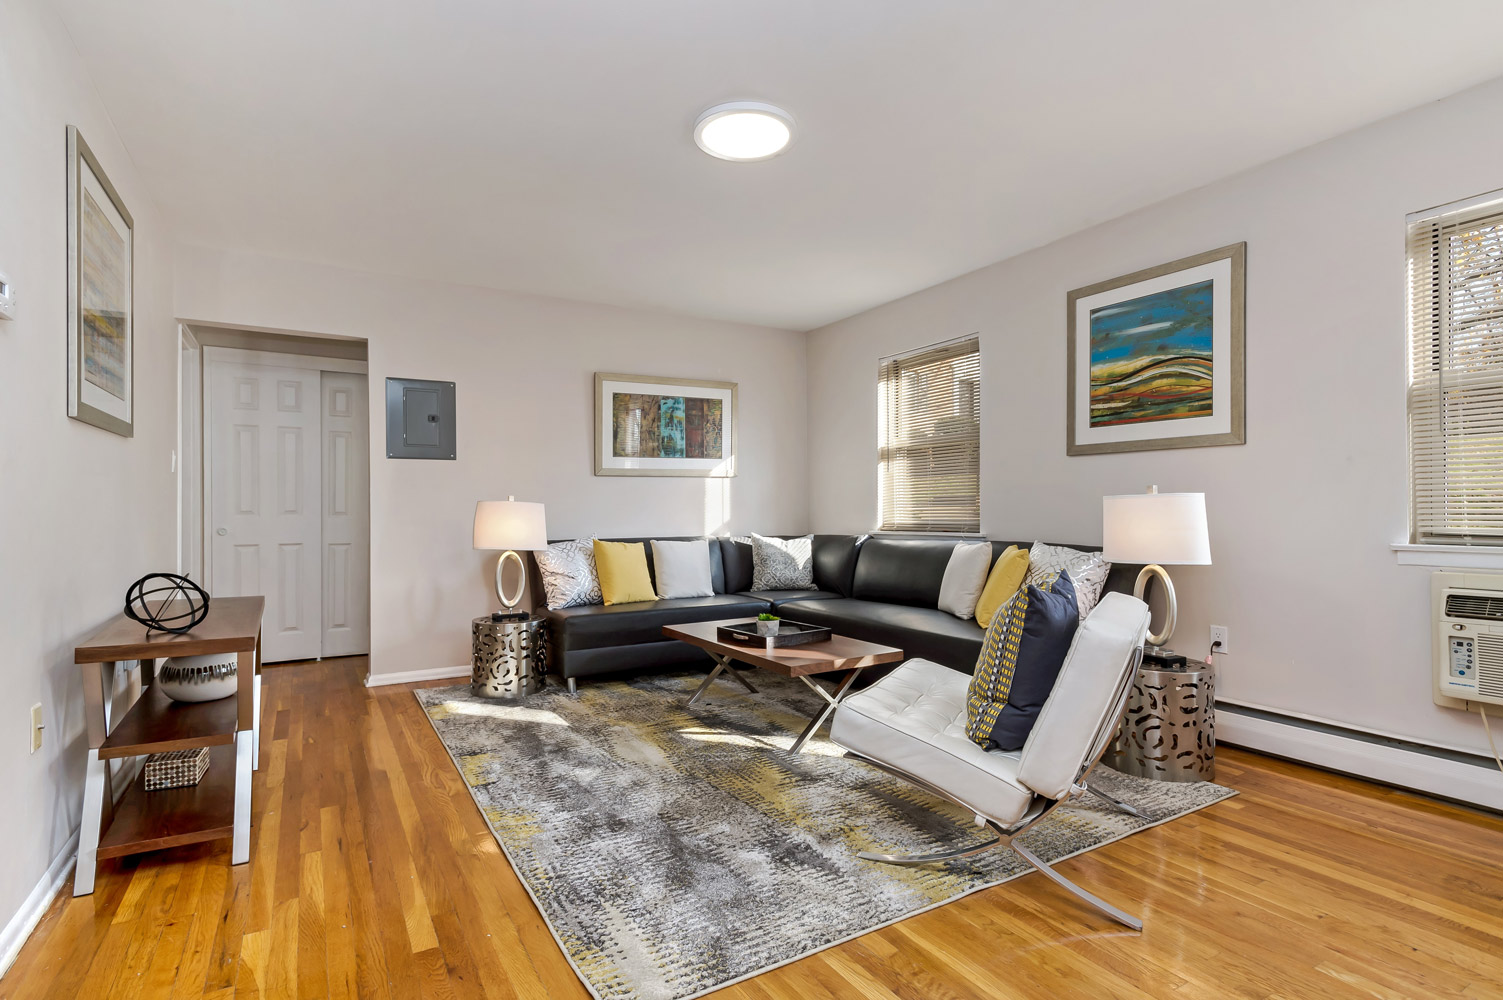 Spacious Floor Plans at Grandview Gardens Apartments in Edison, New Jersey